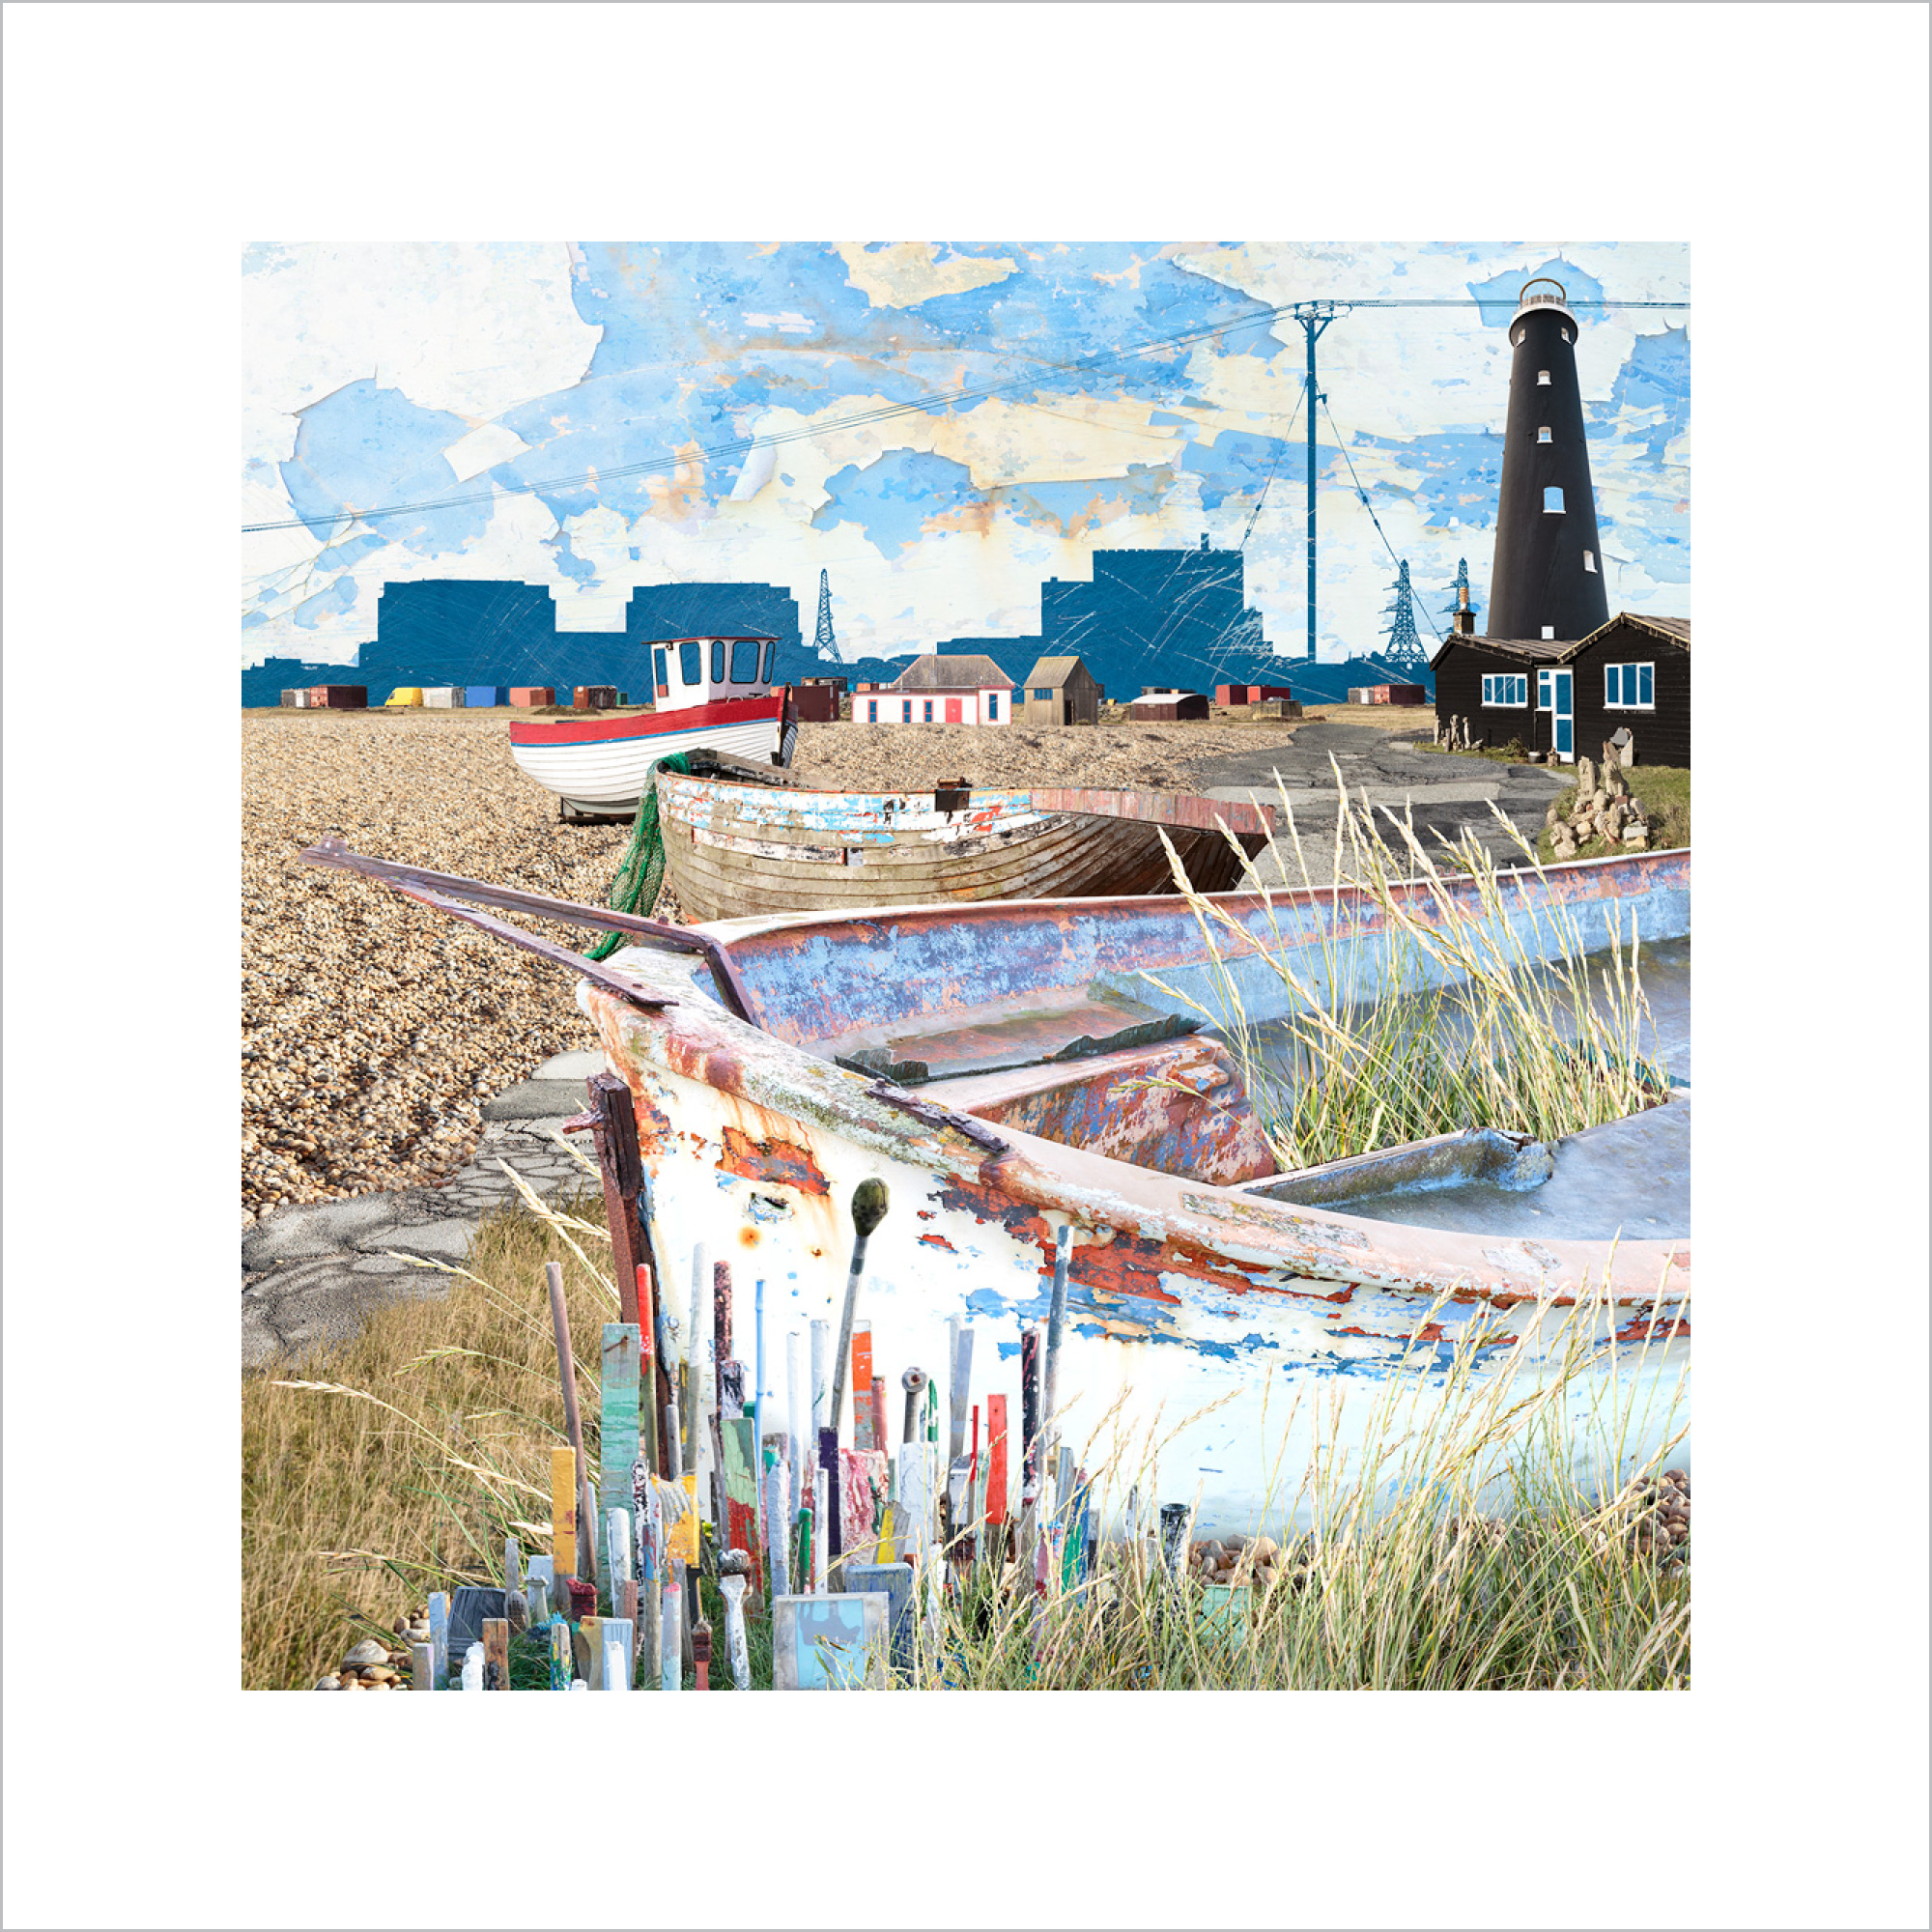 Claire Gill, Limited edition prints, digital photomontage, fine art prints, hahnemuhle, coastal art, Collect Art, seascape 59, Dungeness, power station